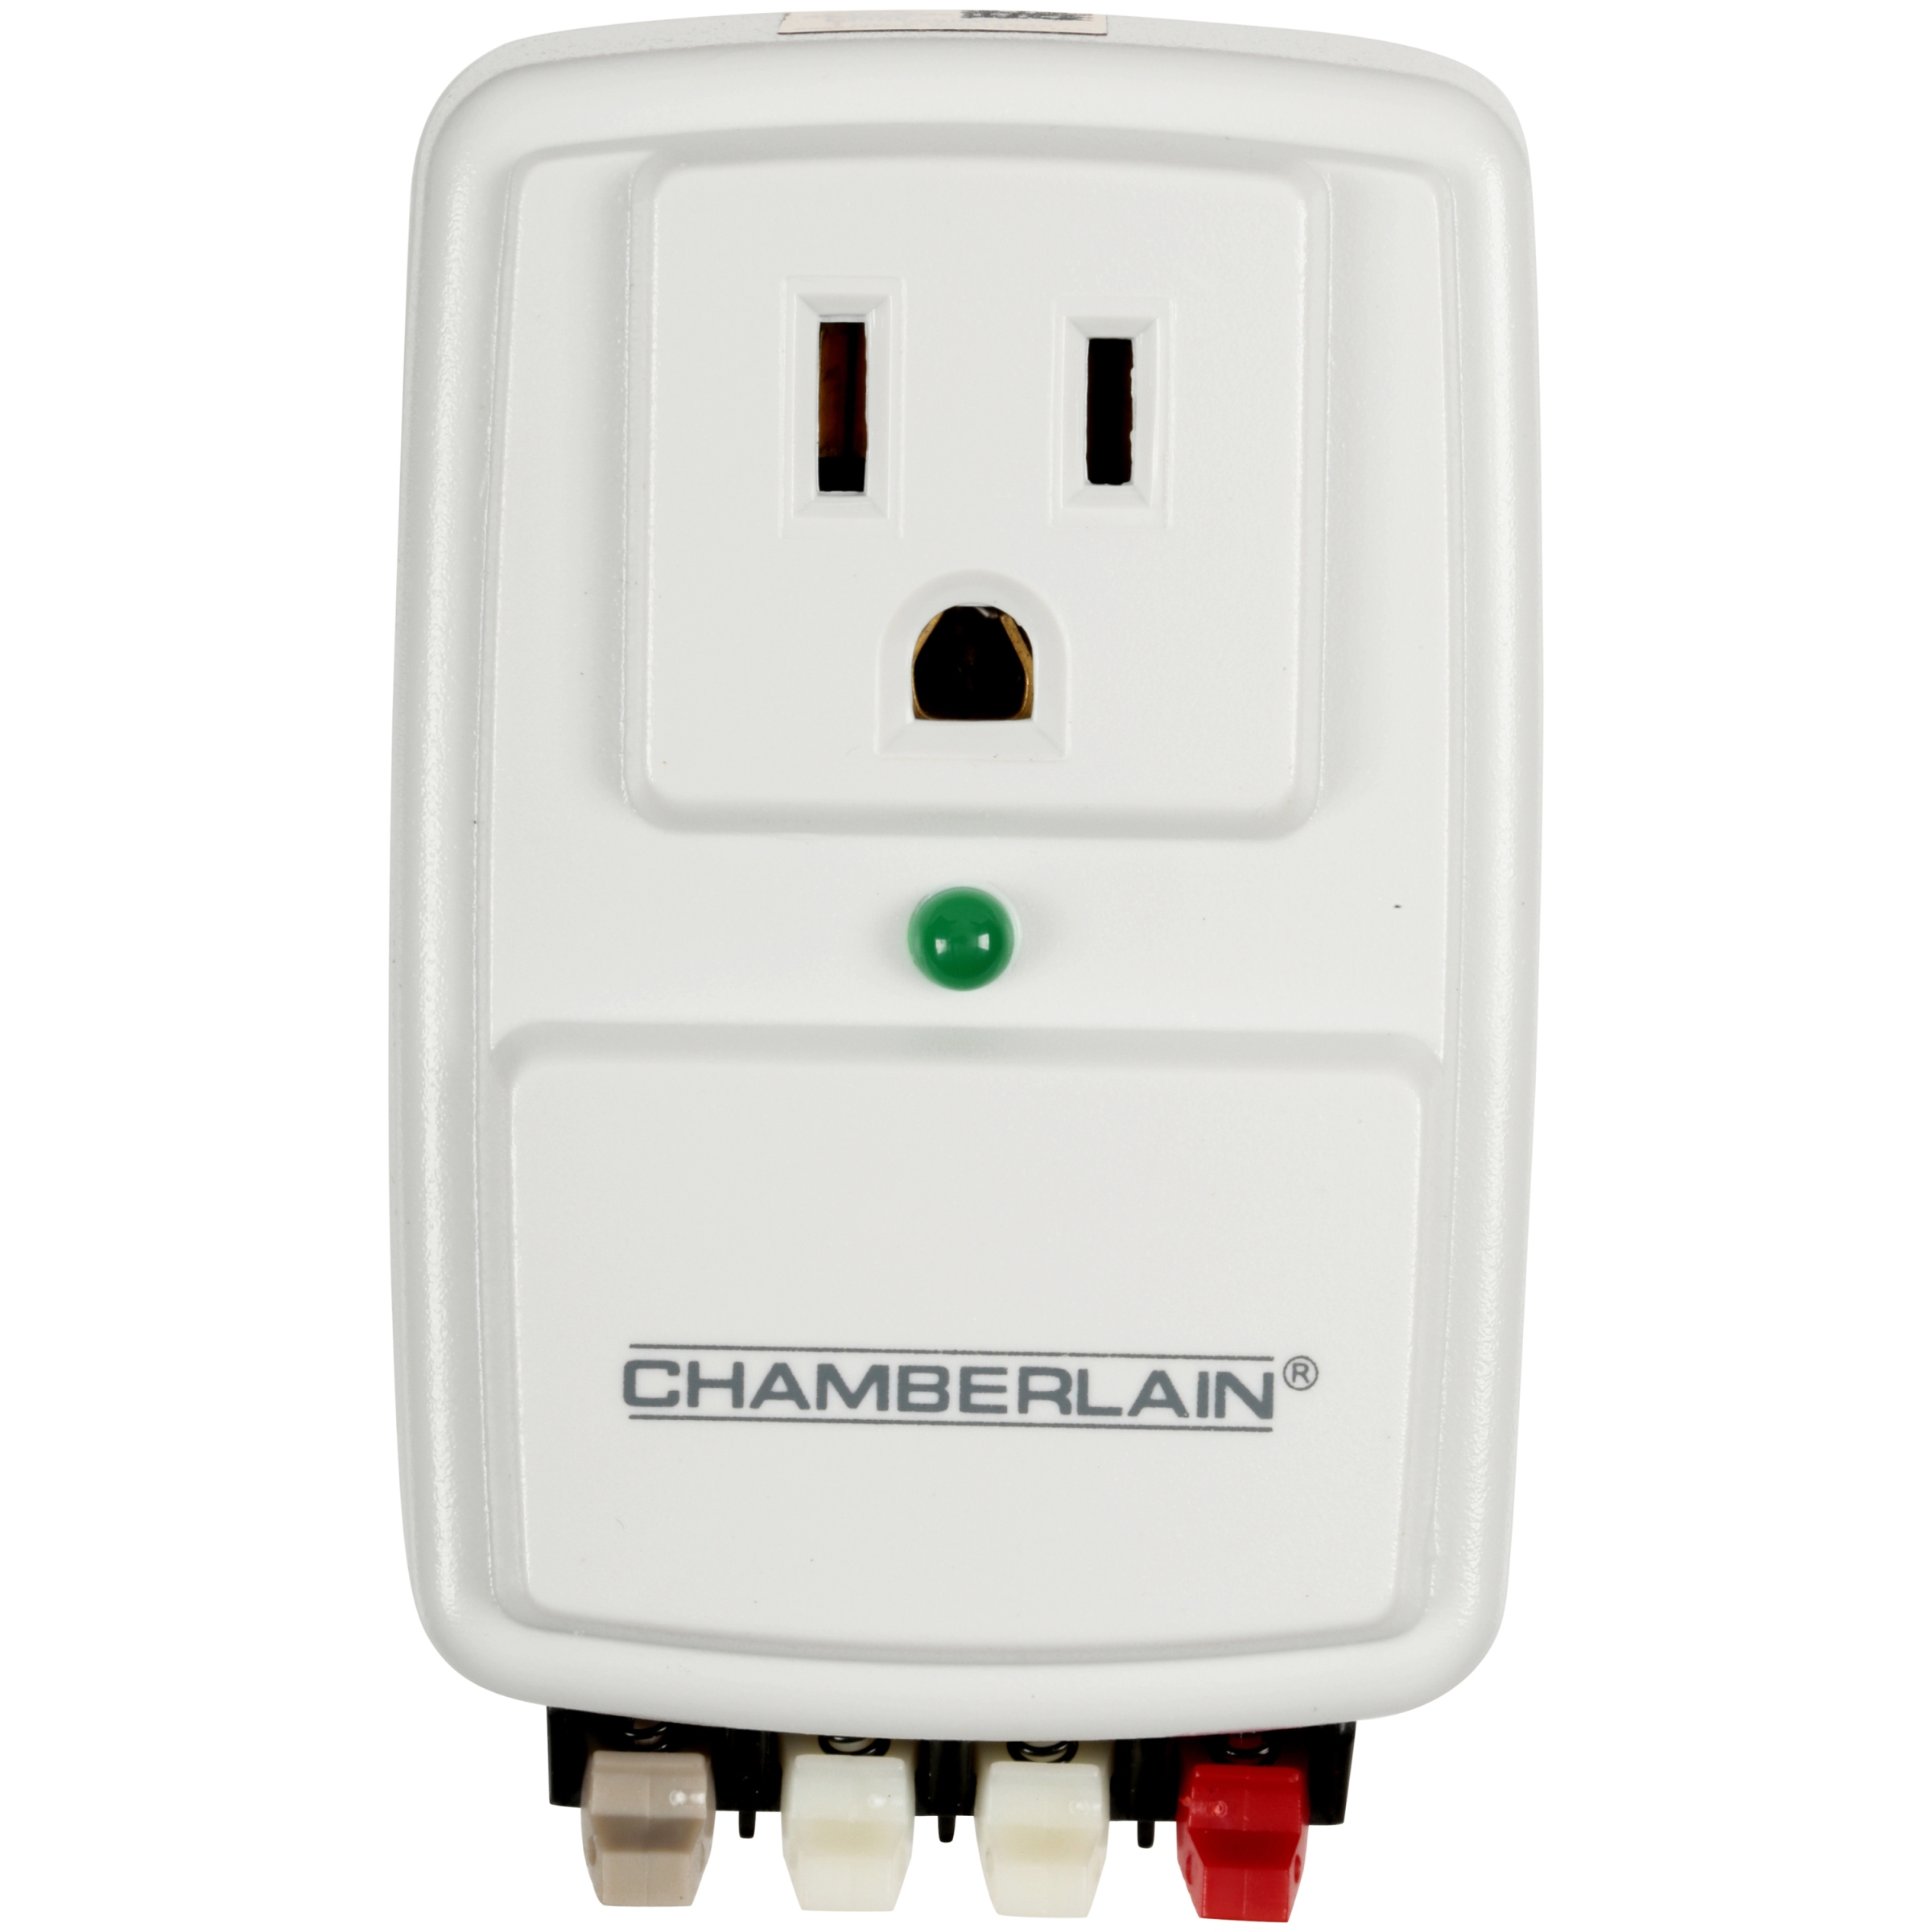 Chamberlain Universal System Surge Protector by The Chamberlain Group, Inc.